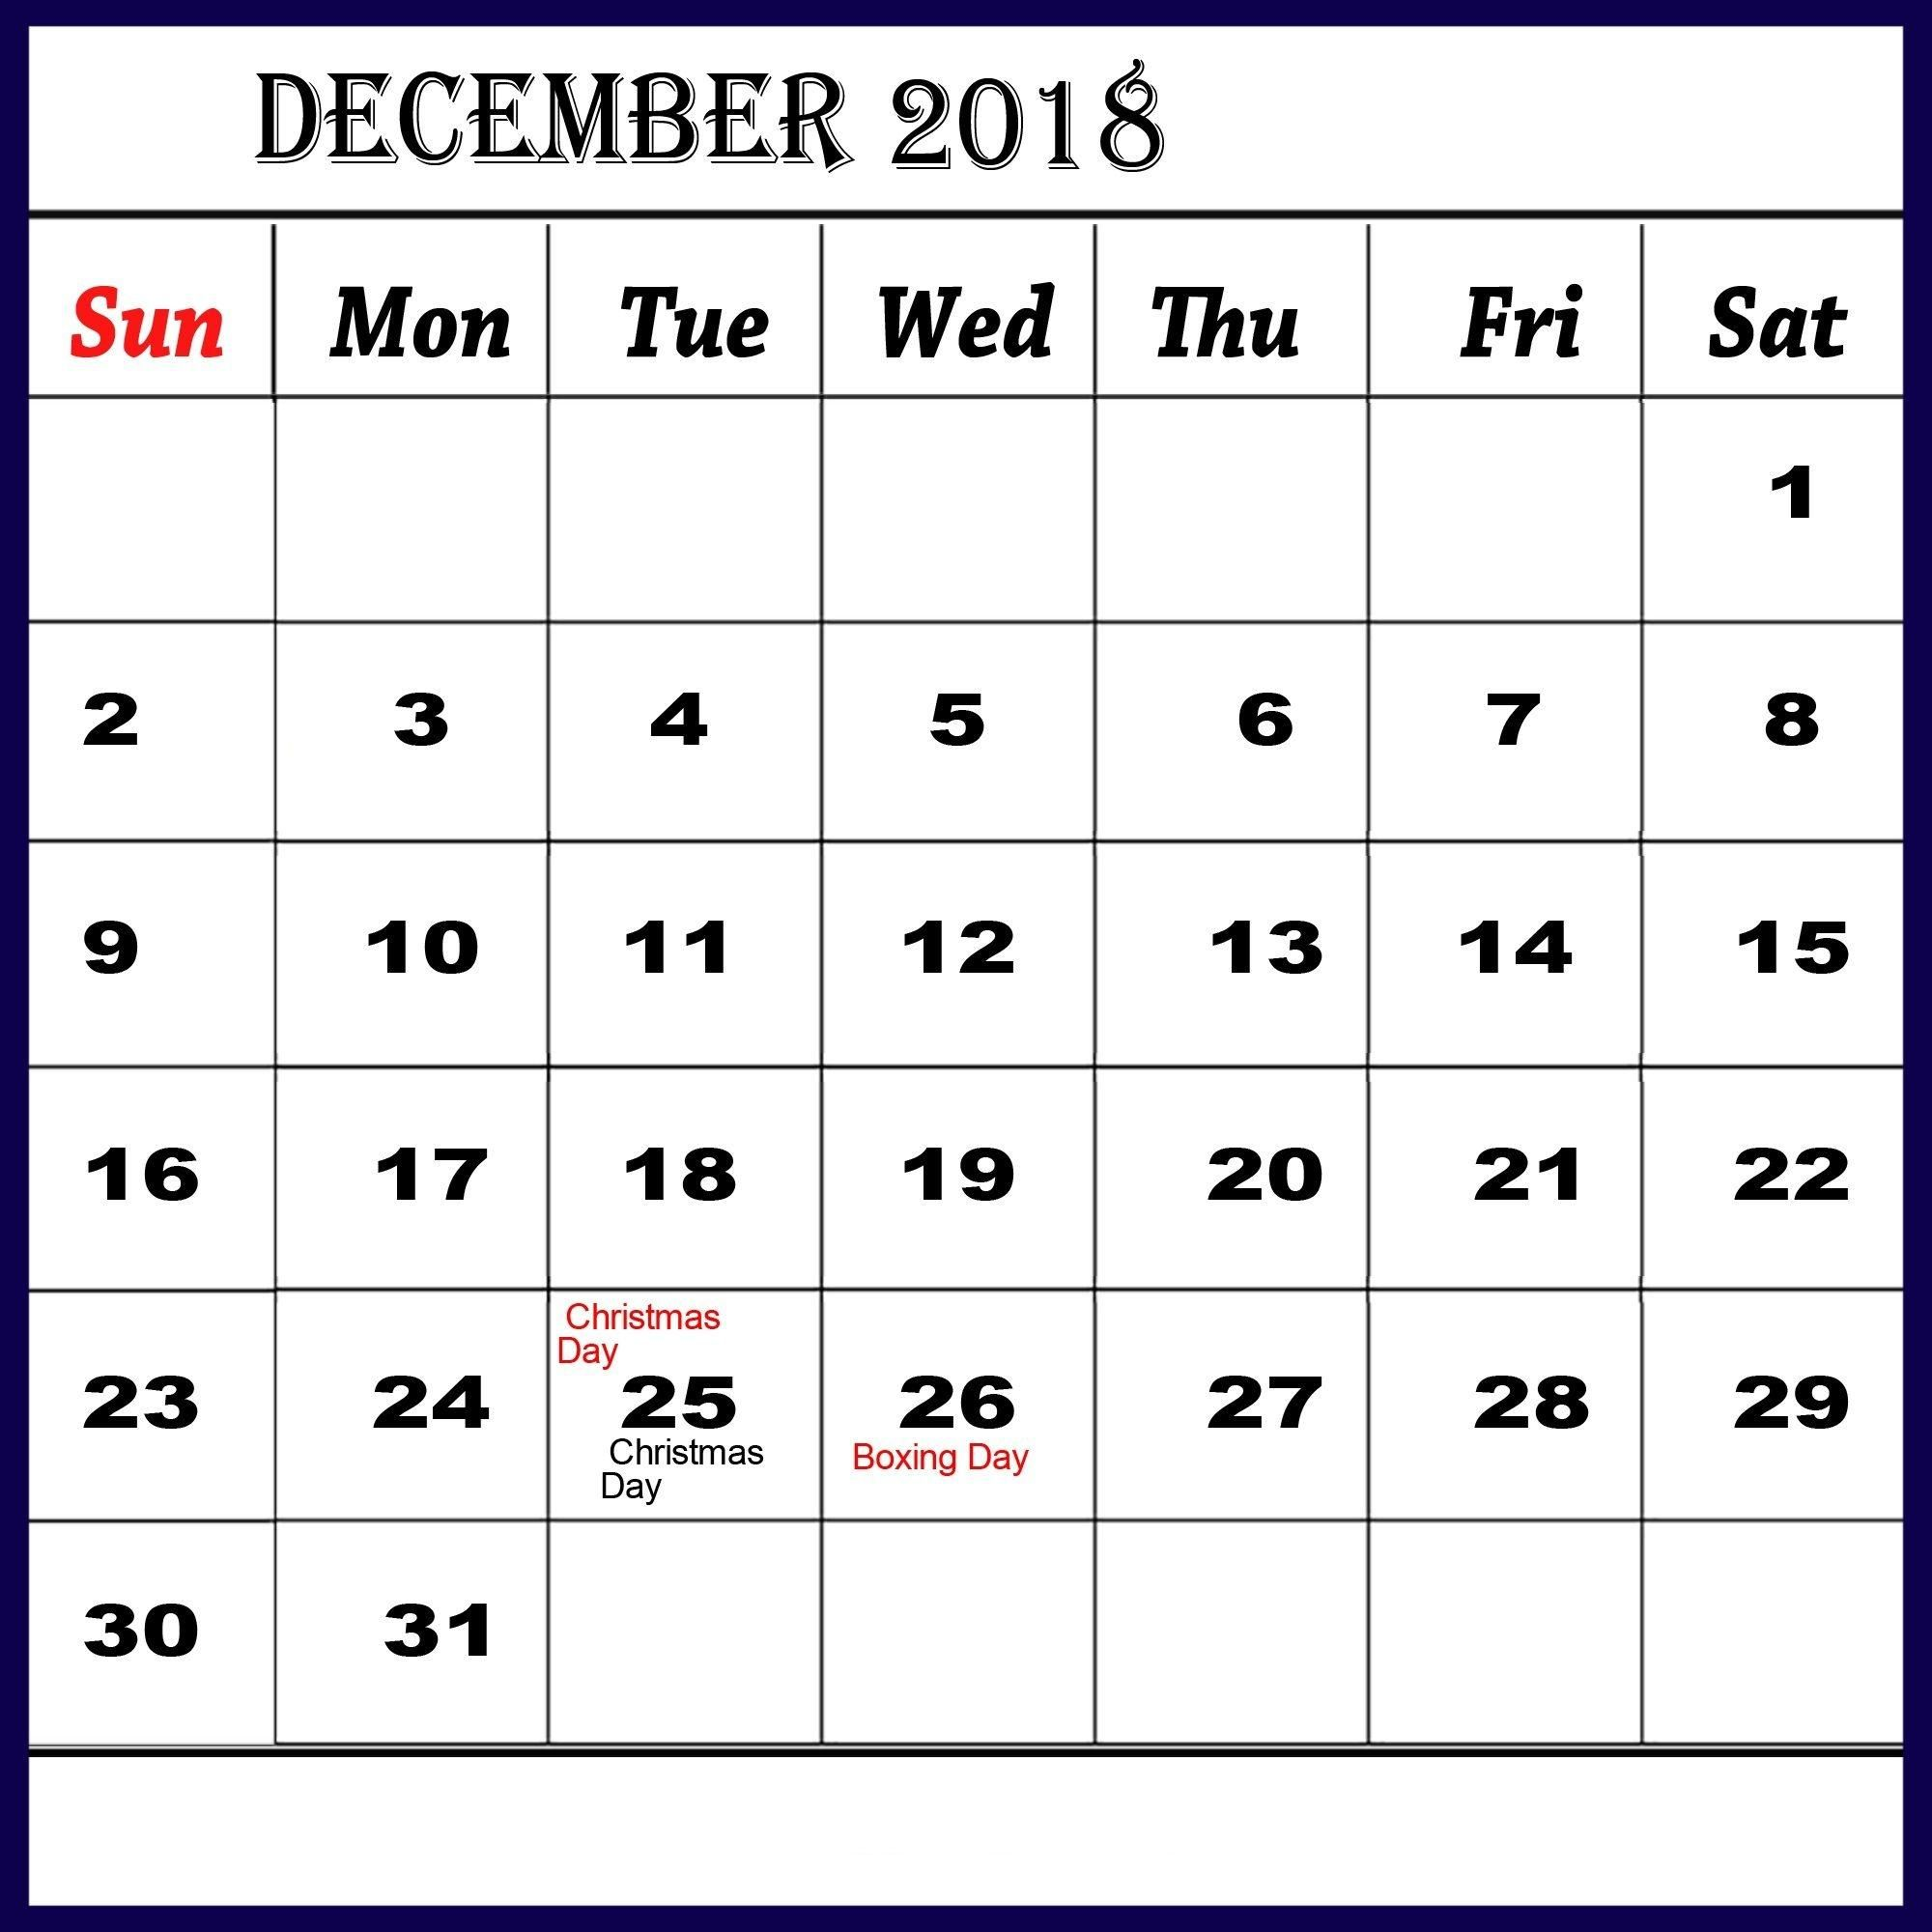 December Calendar Printable With Holidays With